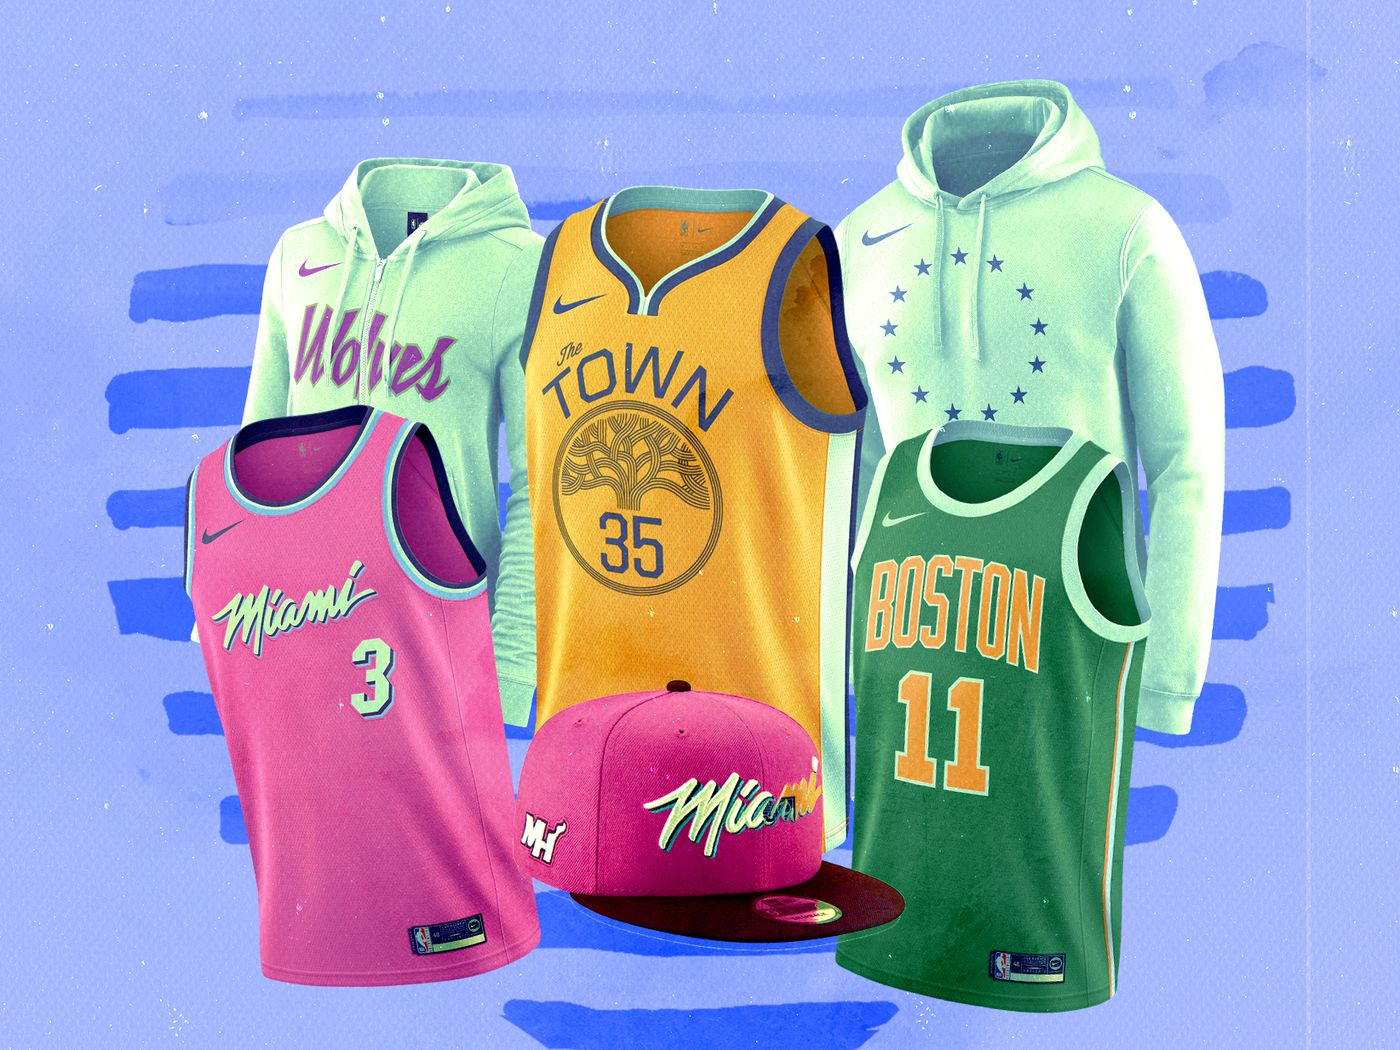 new style 2f945 f4f86 NBA Earned Edition 2018: The jerseys and merch you'll want ...